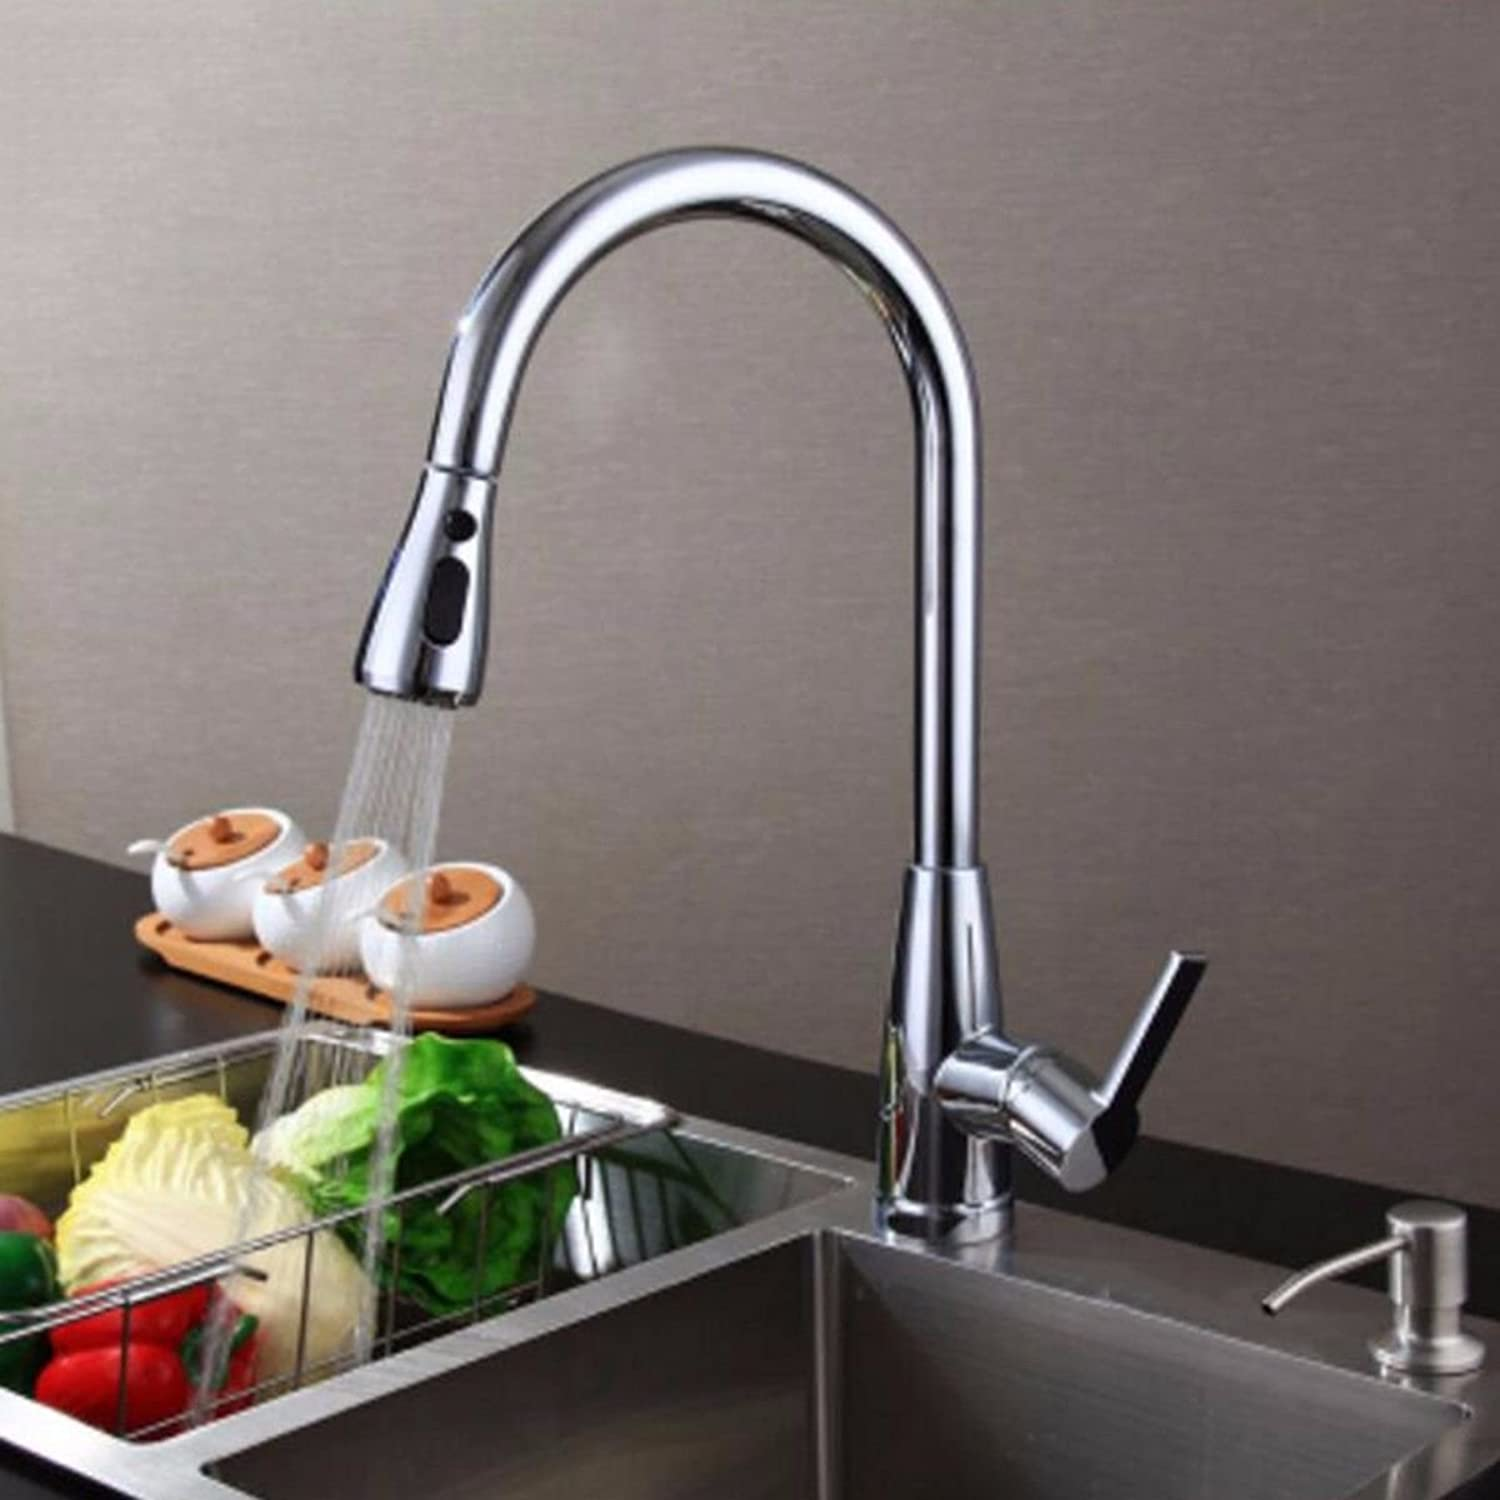 MulFaucet Kitchen Pull Faucet Copper Pull-Out Kitchen Faucet Sink Universal Vegetable Basin Faucet C2